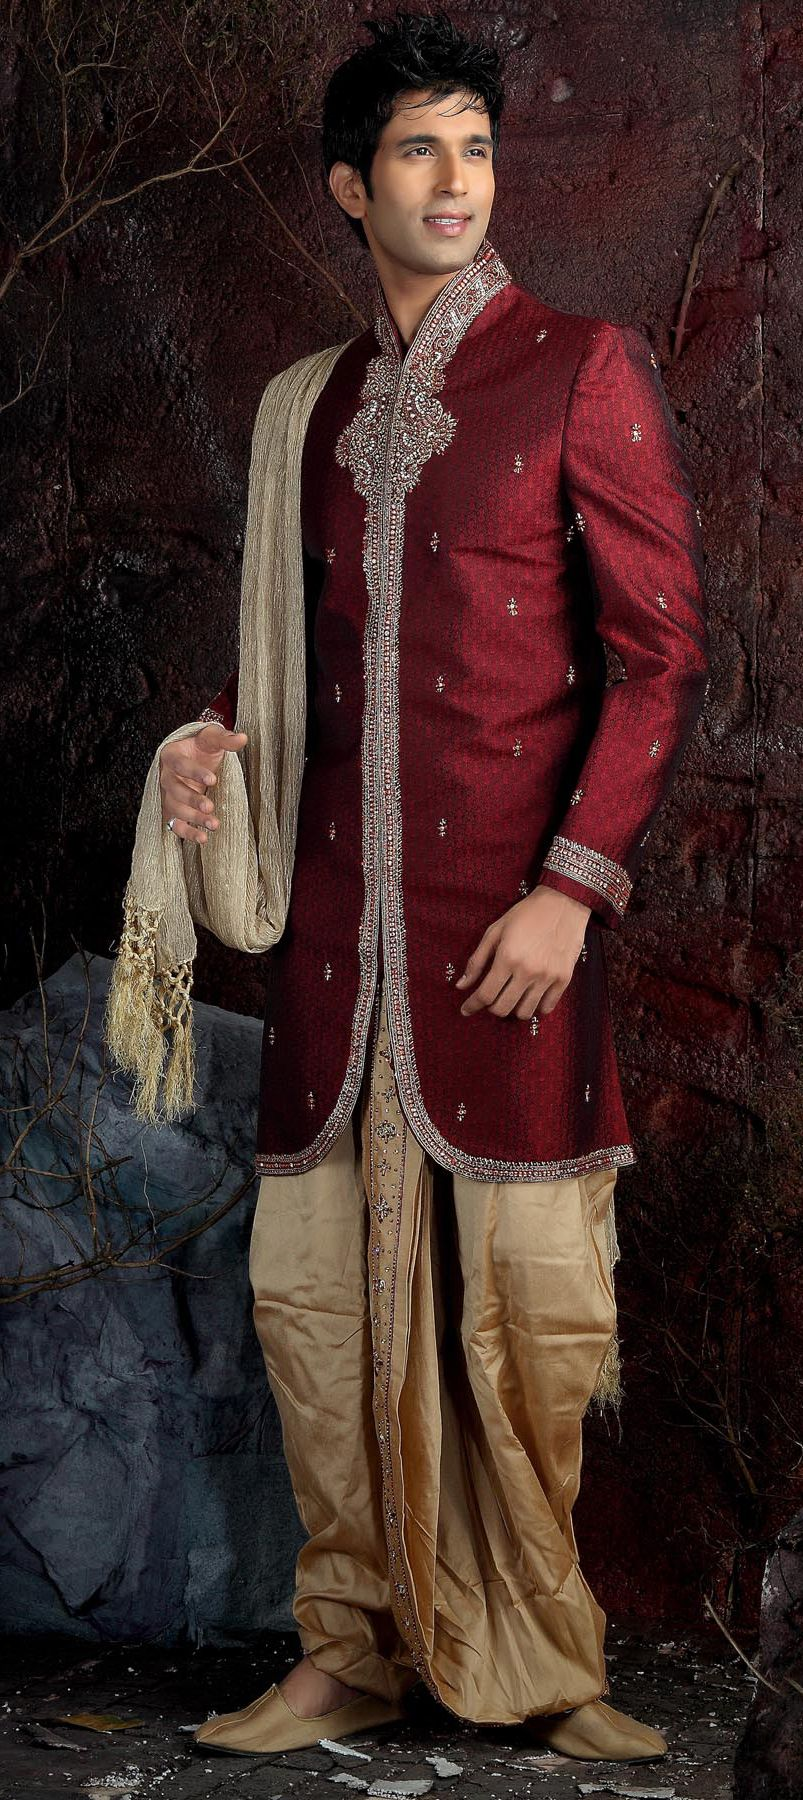 Brocade Dhoti Sherwani In Red And Maroon With Embroidered Work Indian Wedding Clothes For Men Sherwani Indian Groom Wear